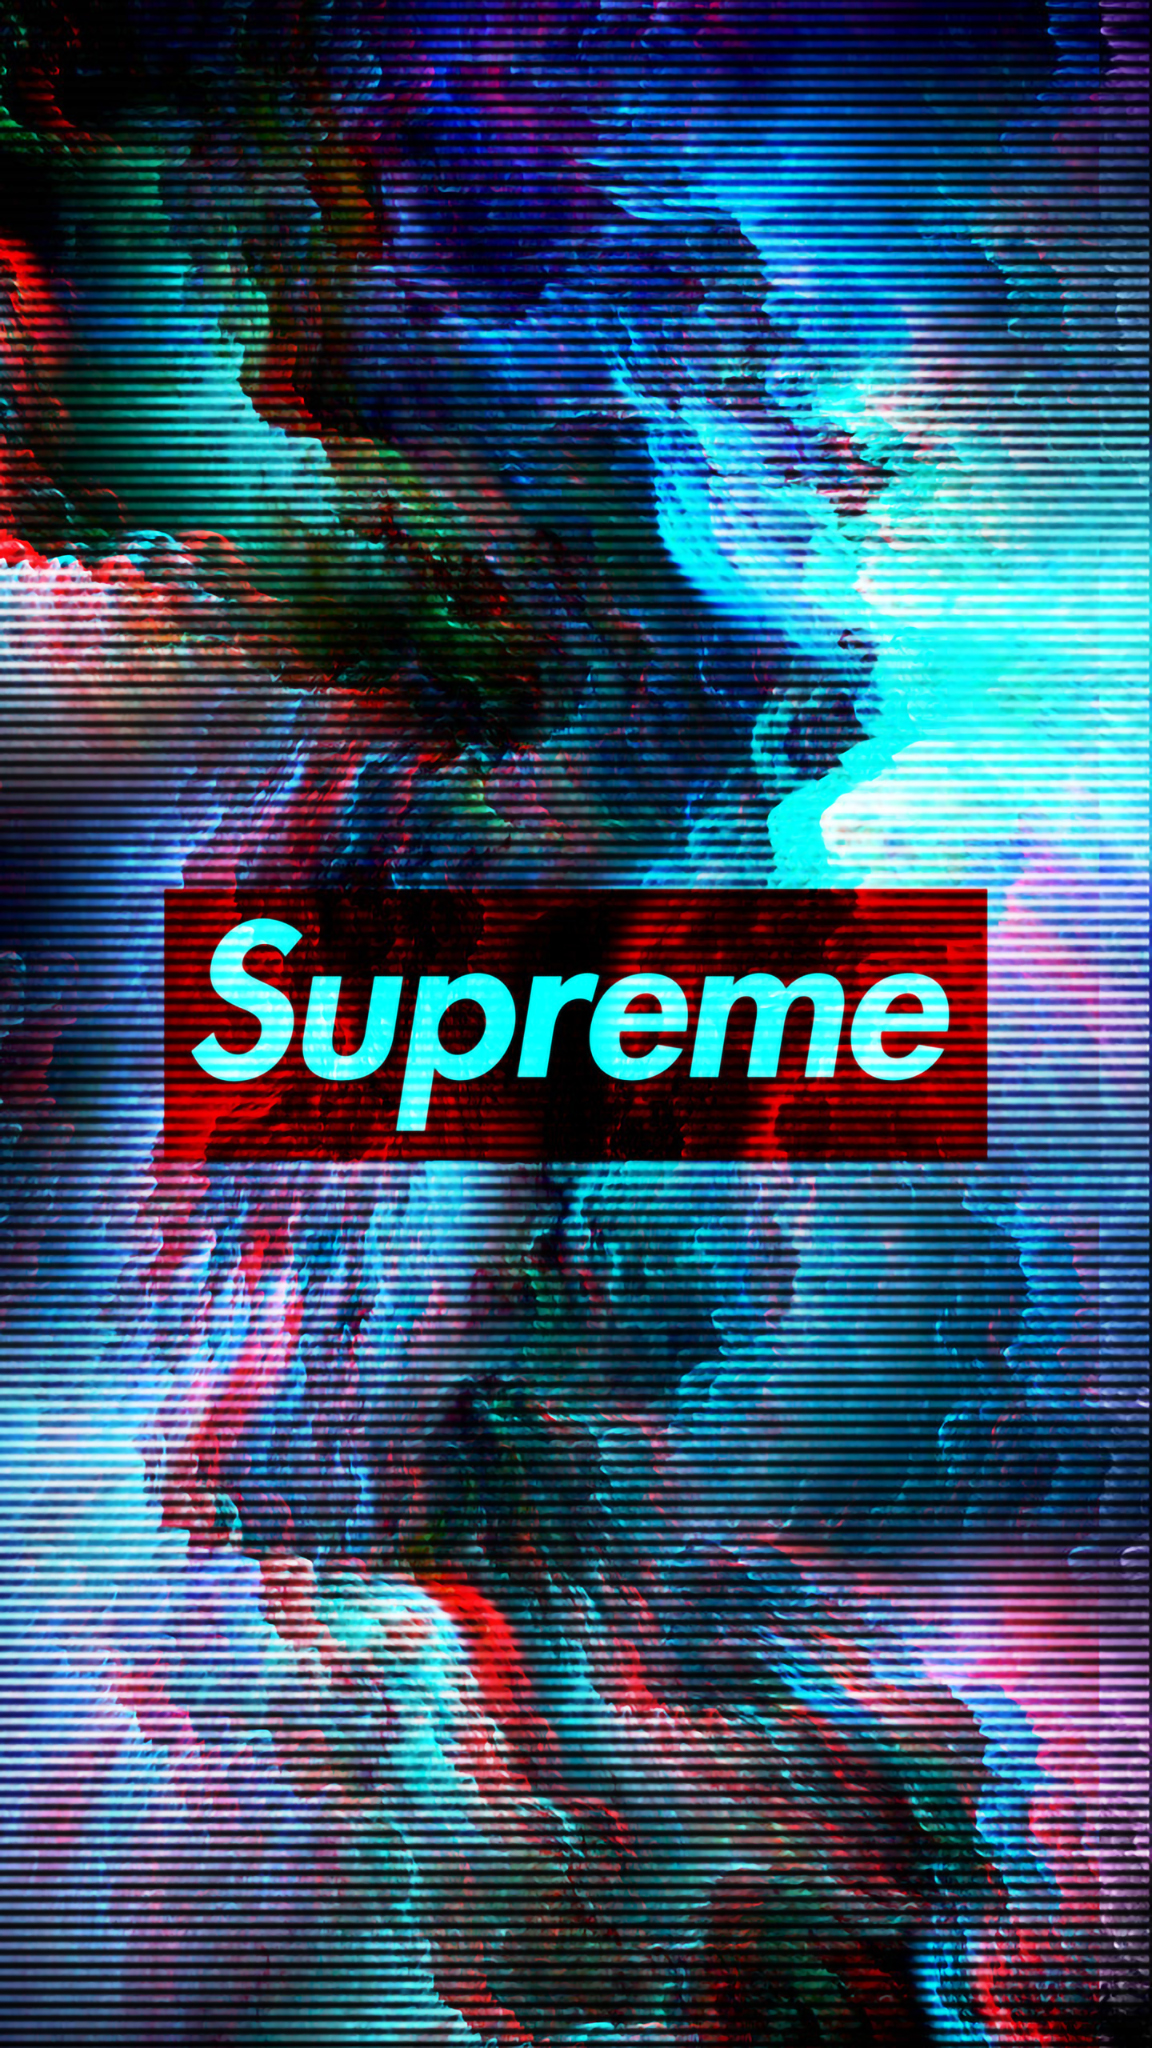 Supreme Wallpaper Collection For Mobile